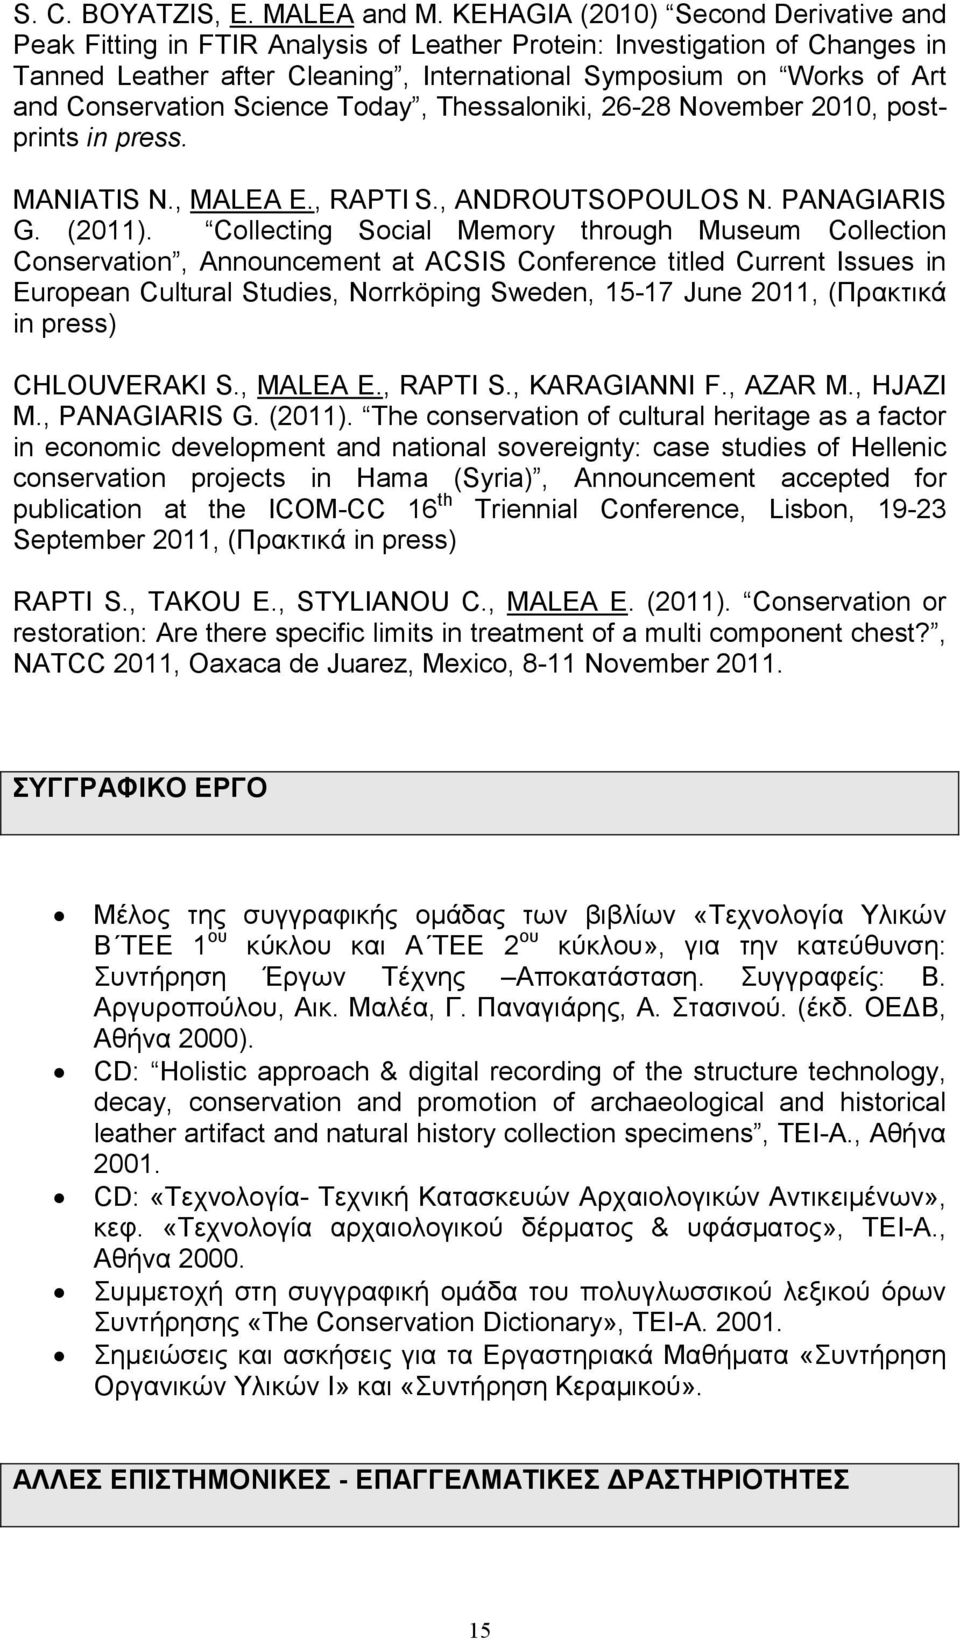 Conservation Science Today, Thessaloniki, 26-28 November 2010, postprints in press. MANIATIS N., MALEA E., RAPTI S., ANDROUTSOPOULOS N. PANAGIARIS G. (2011).